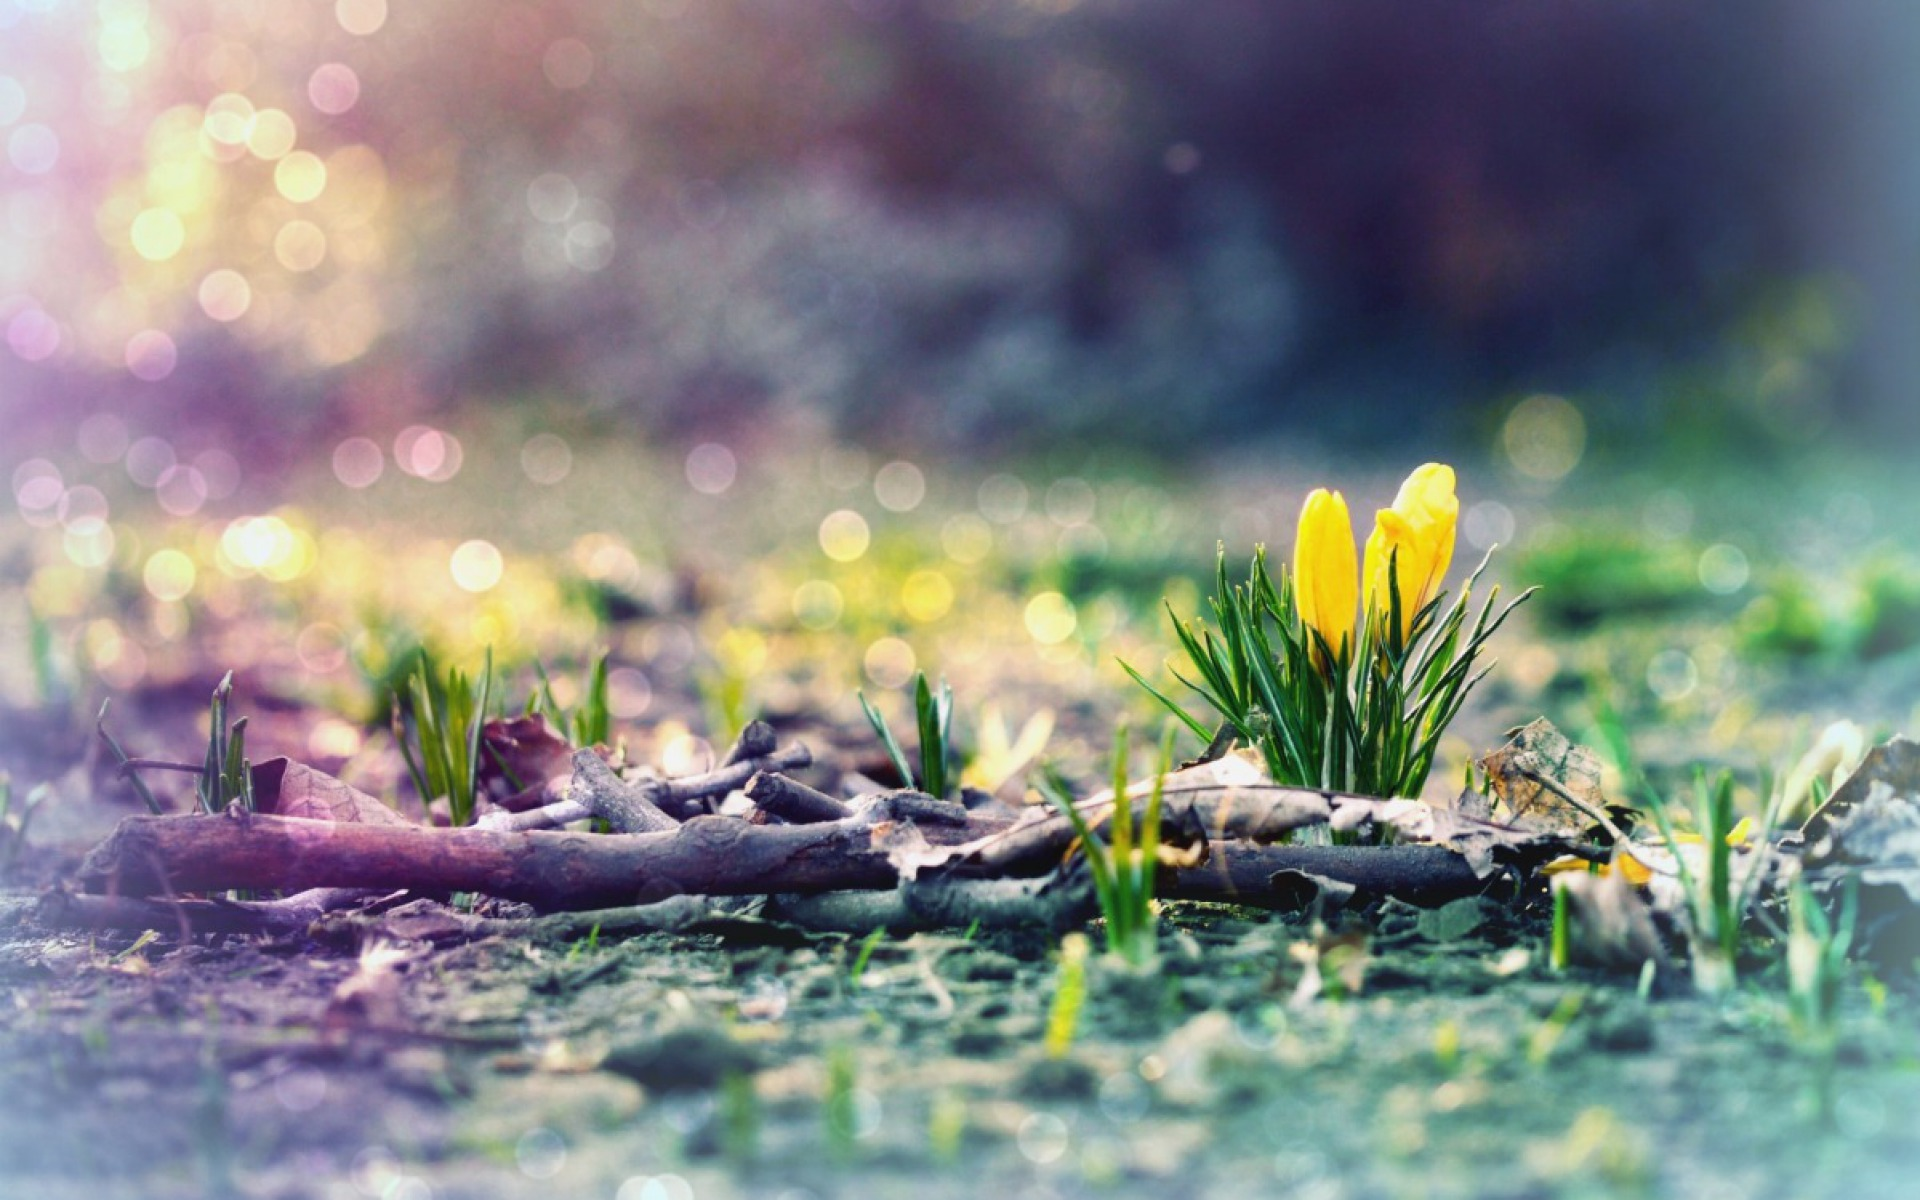 Early Spring Flowers Wallpaper - WallpaperSafari